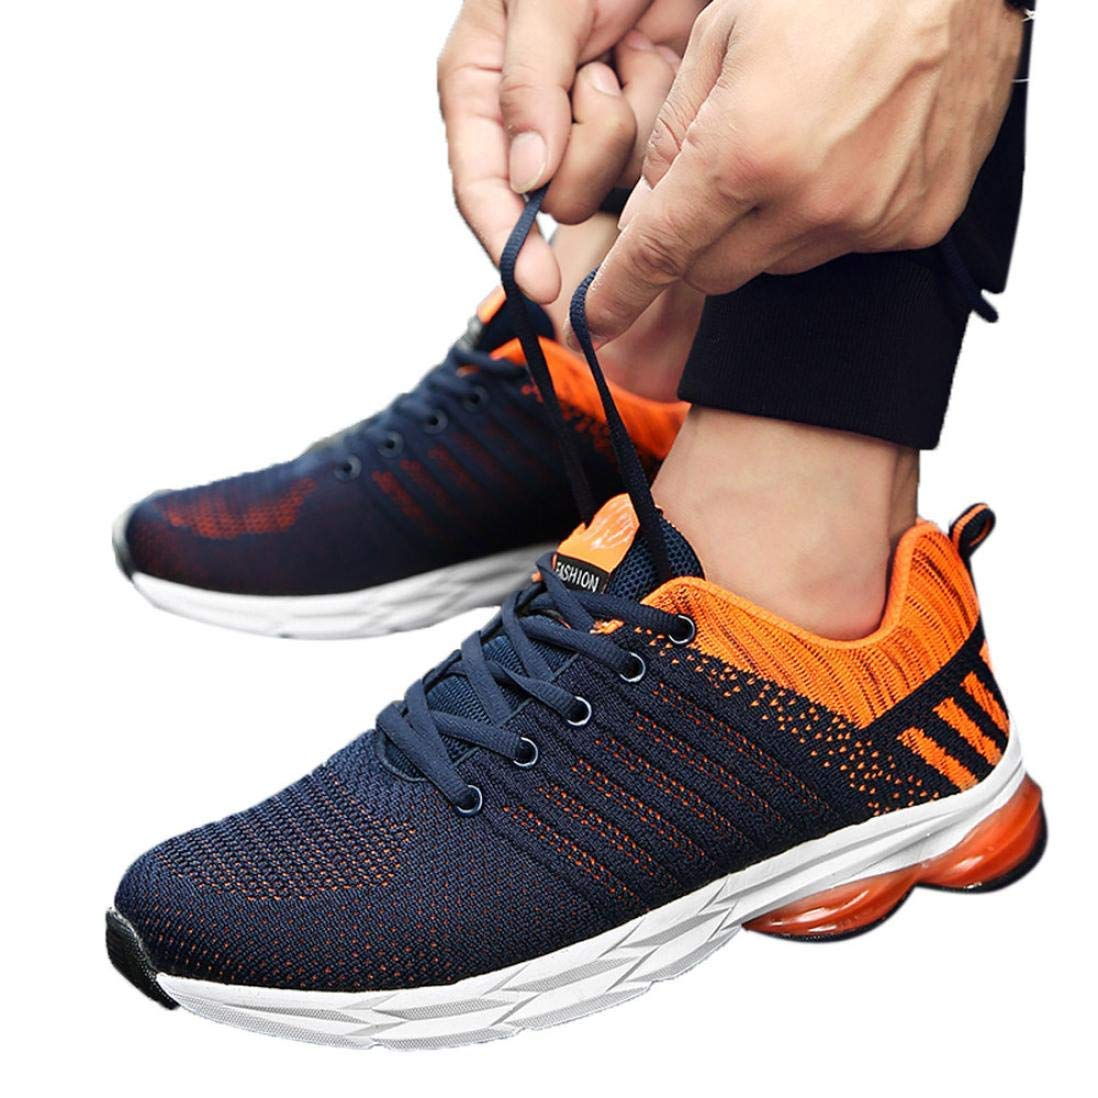 Men Sport Men Outdoor Sports Breathable Casual Gym Running Shoes Comfortable Soft Wild Tight Super Quality Orange Black Green Red for Womens